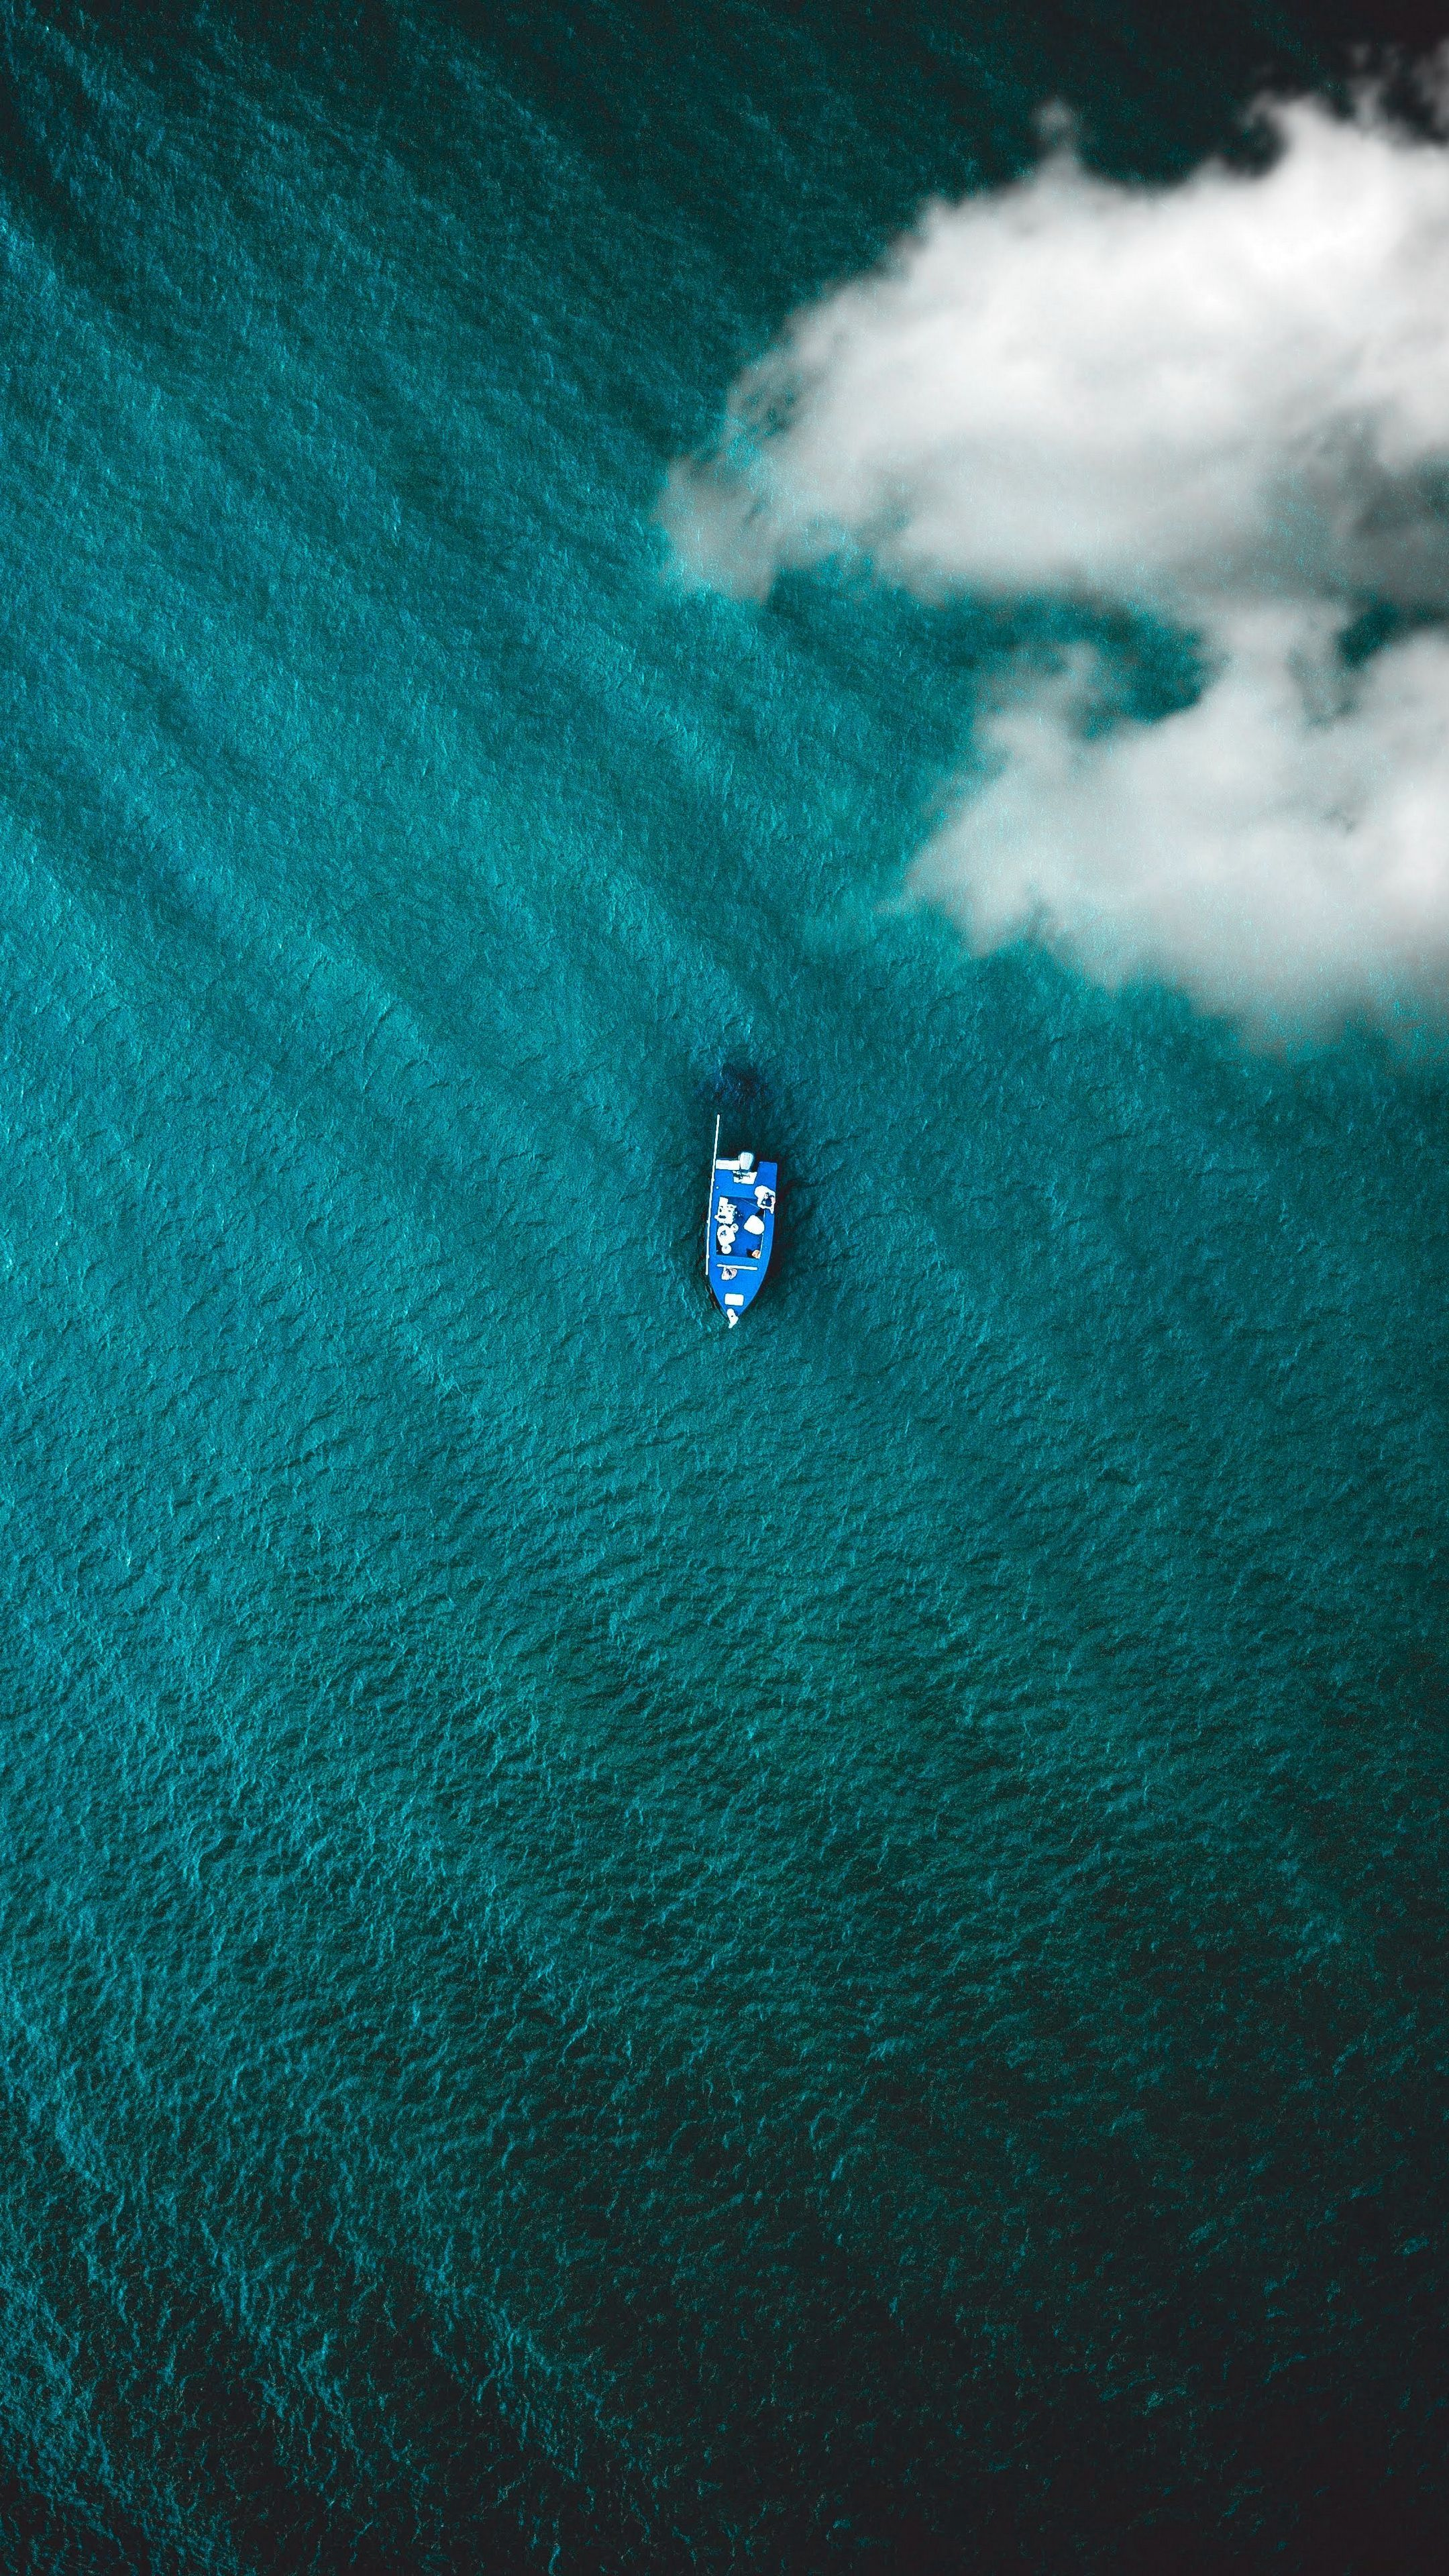 Nature Boat Sea Clouds Android Wallpapers 4k Hd Aerial Photography Drone Photography Lightroom Presets Wallpaper coast aerial view sea boat